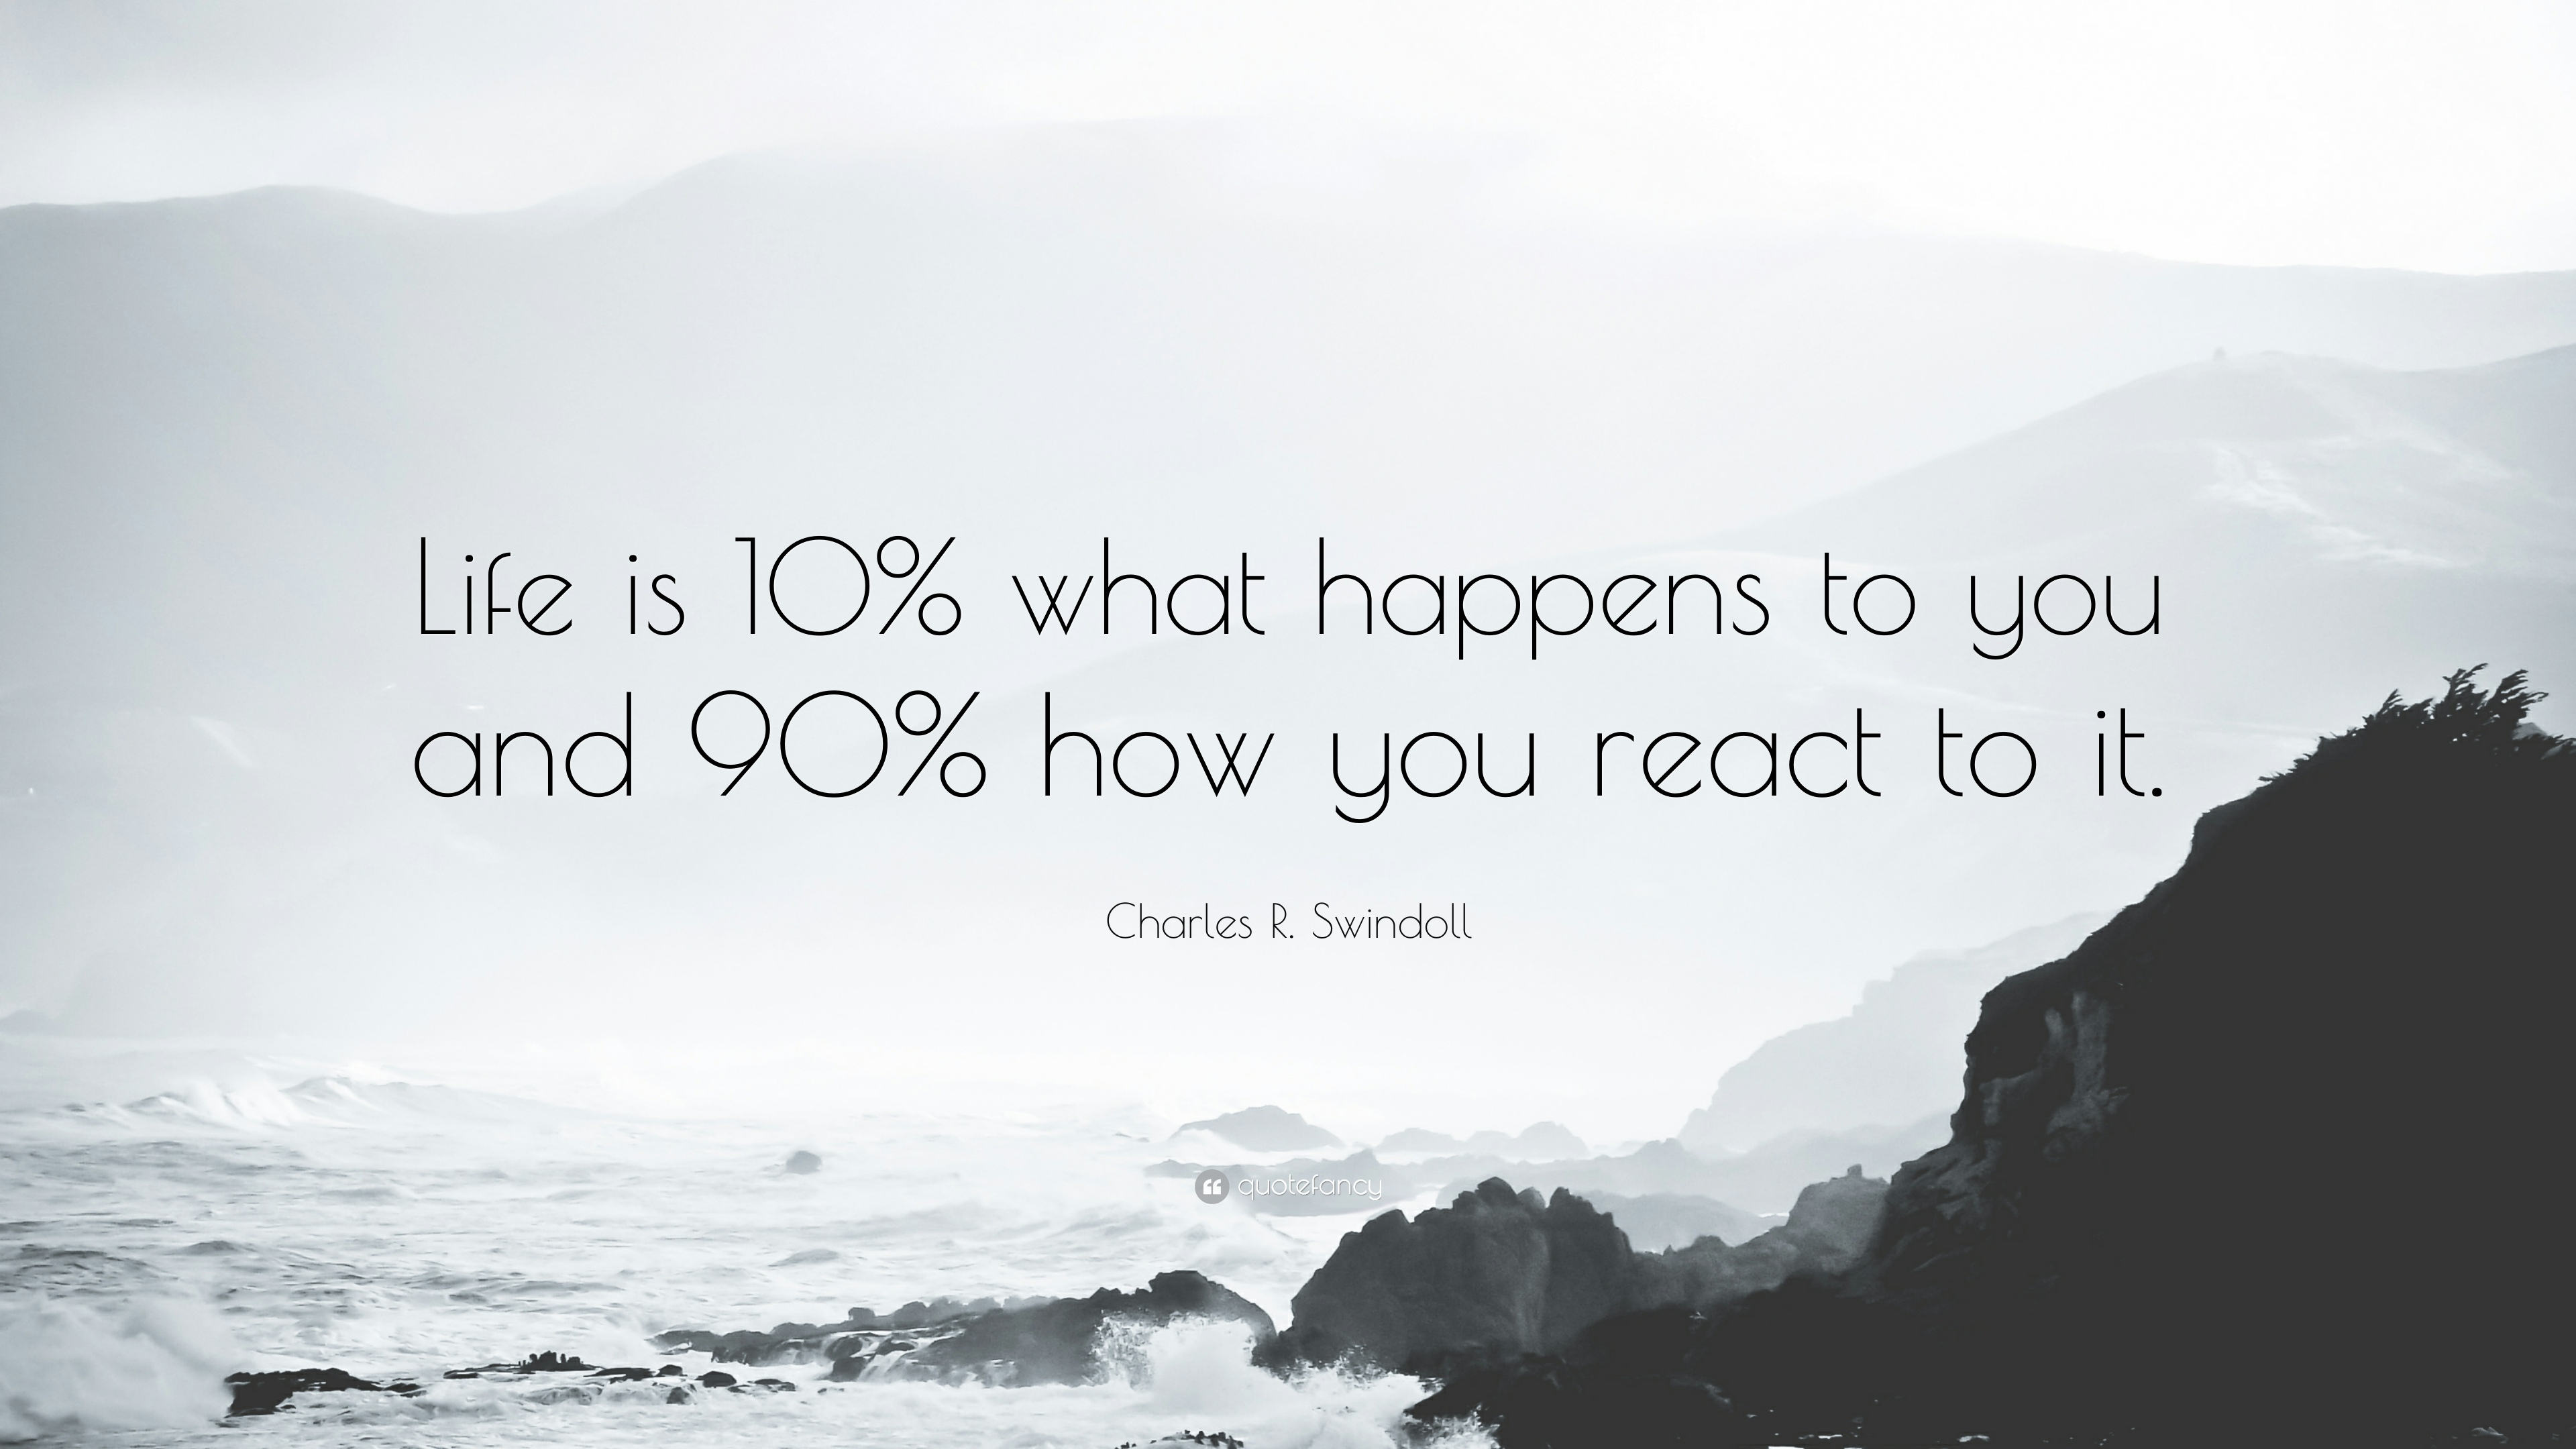 Afbeeldingsresultaat voor life is 10 what happens to you and 90 how you react to it